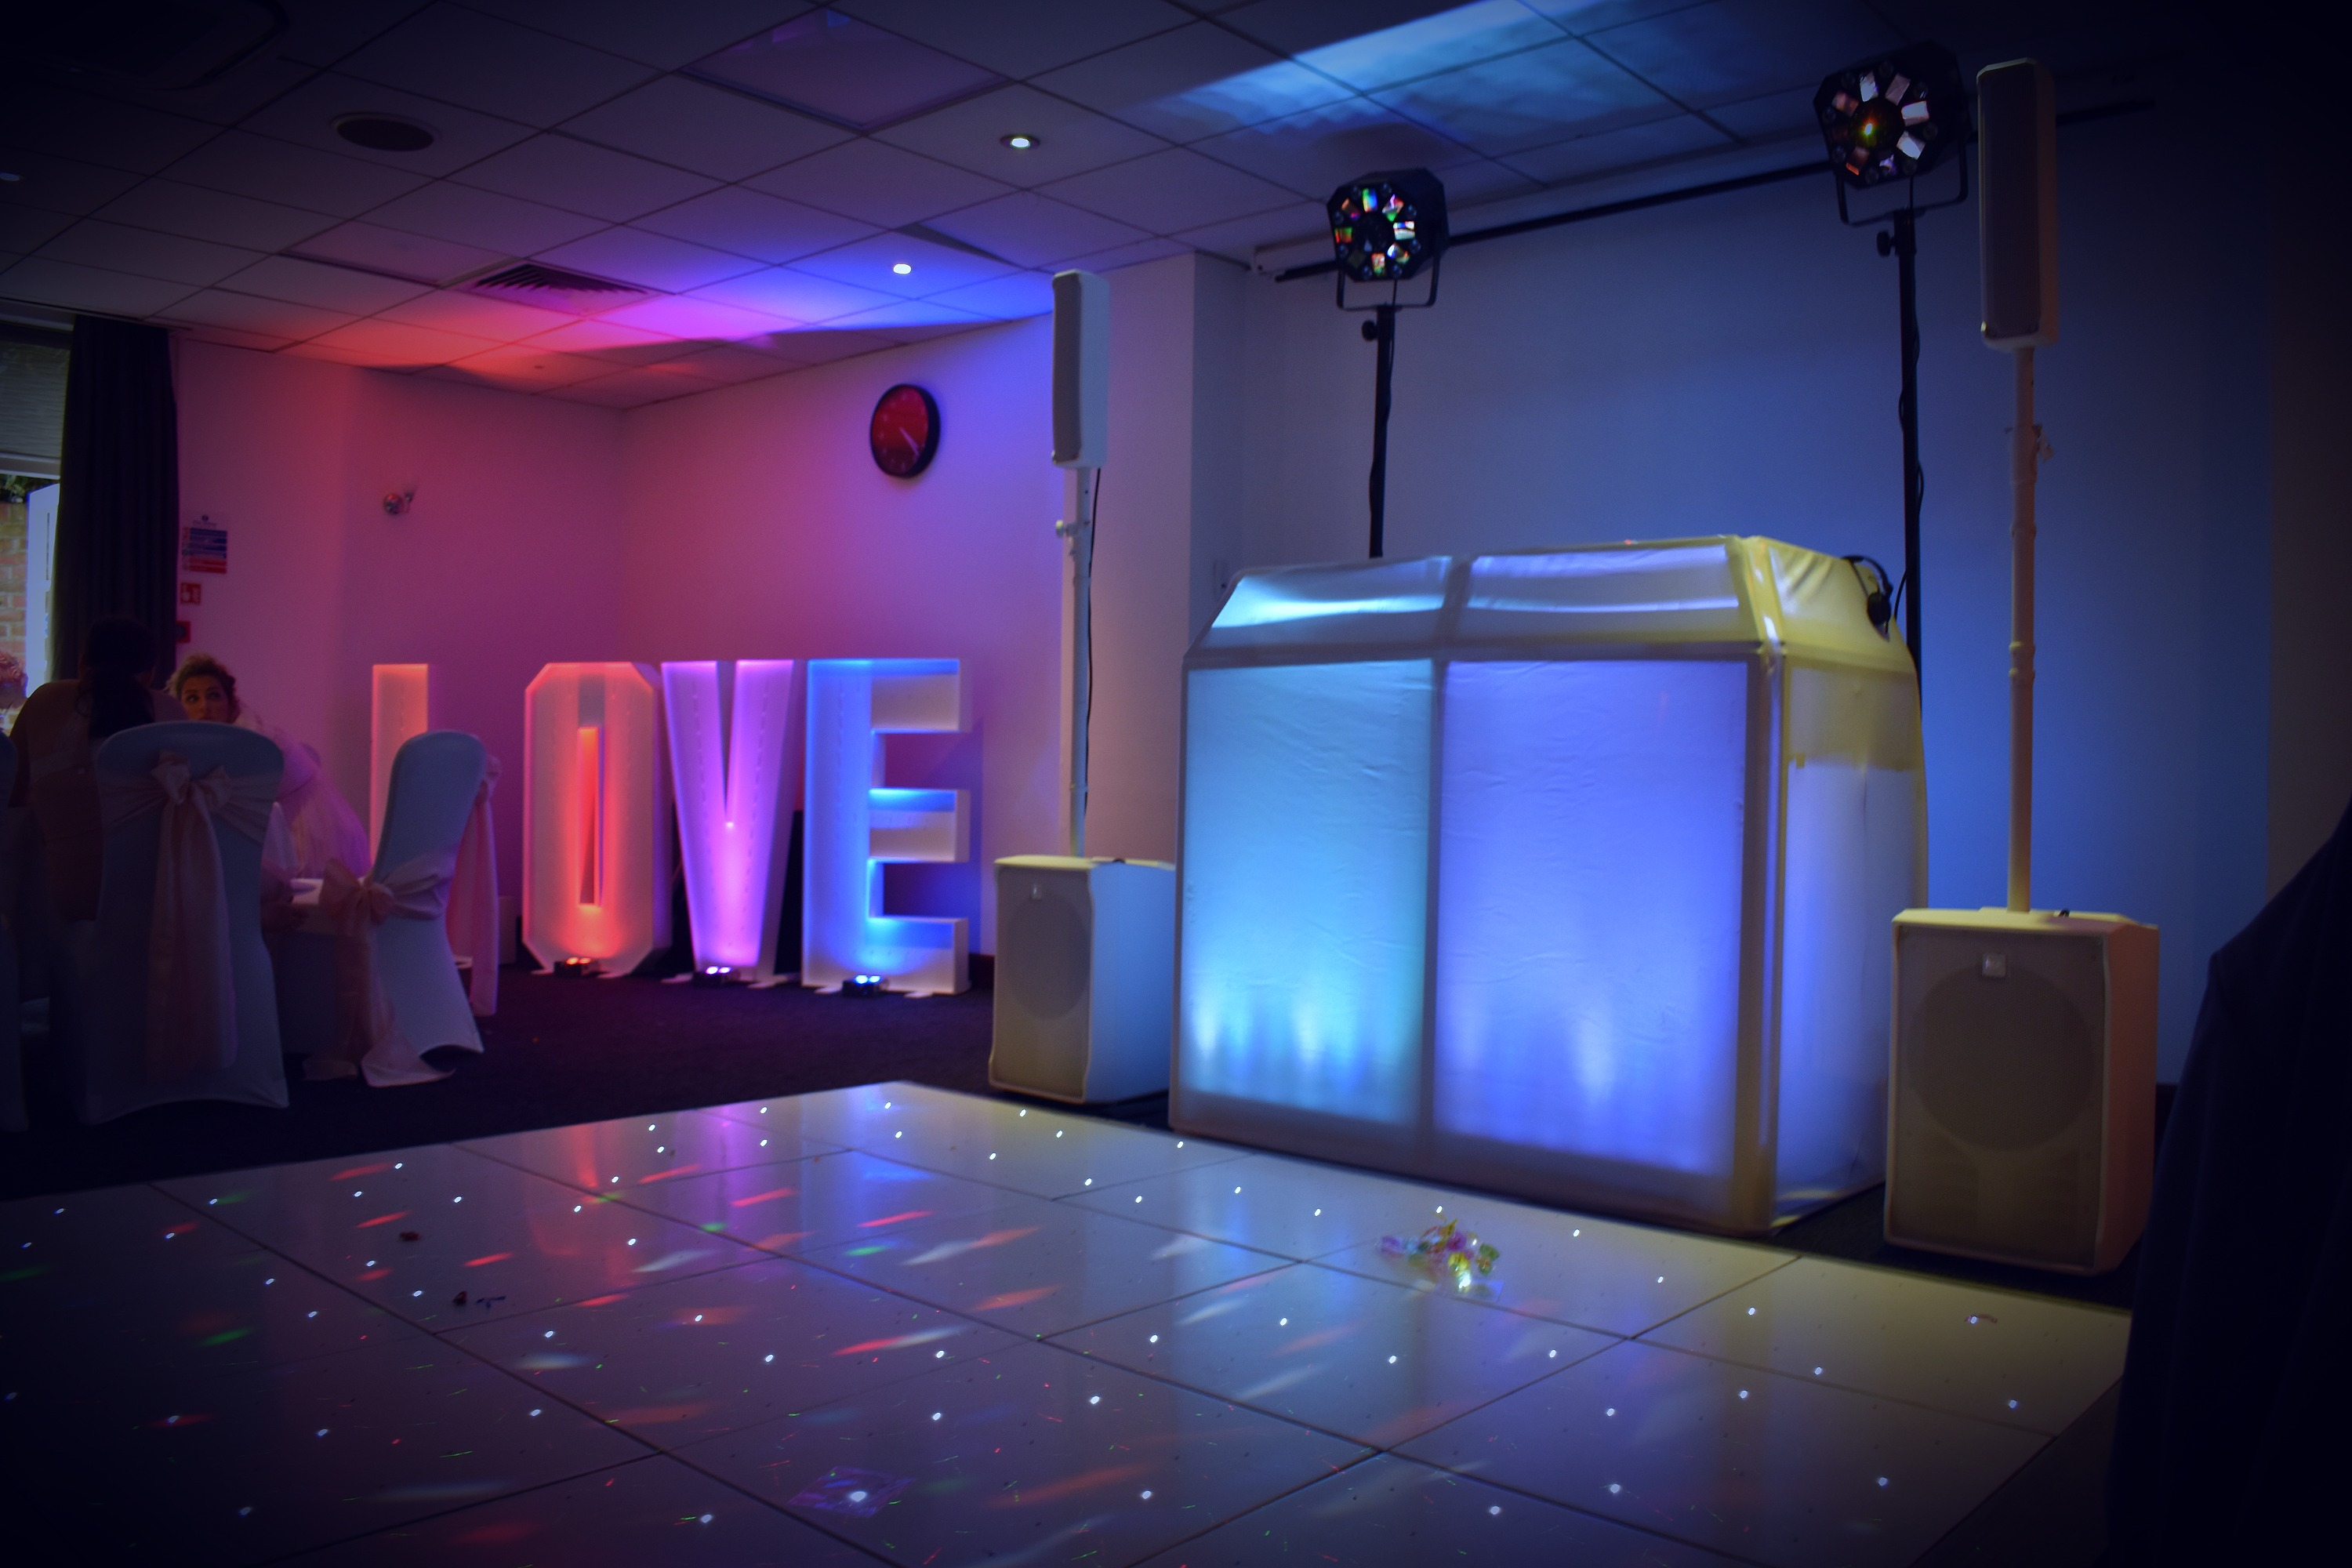 Light up led letter and number hire Essex - MMENT